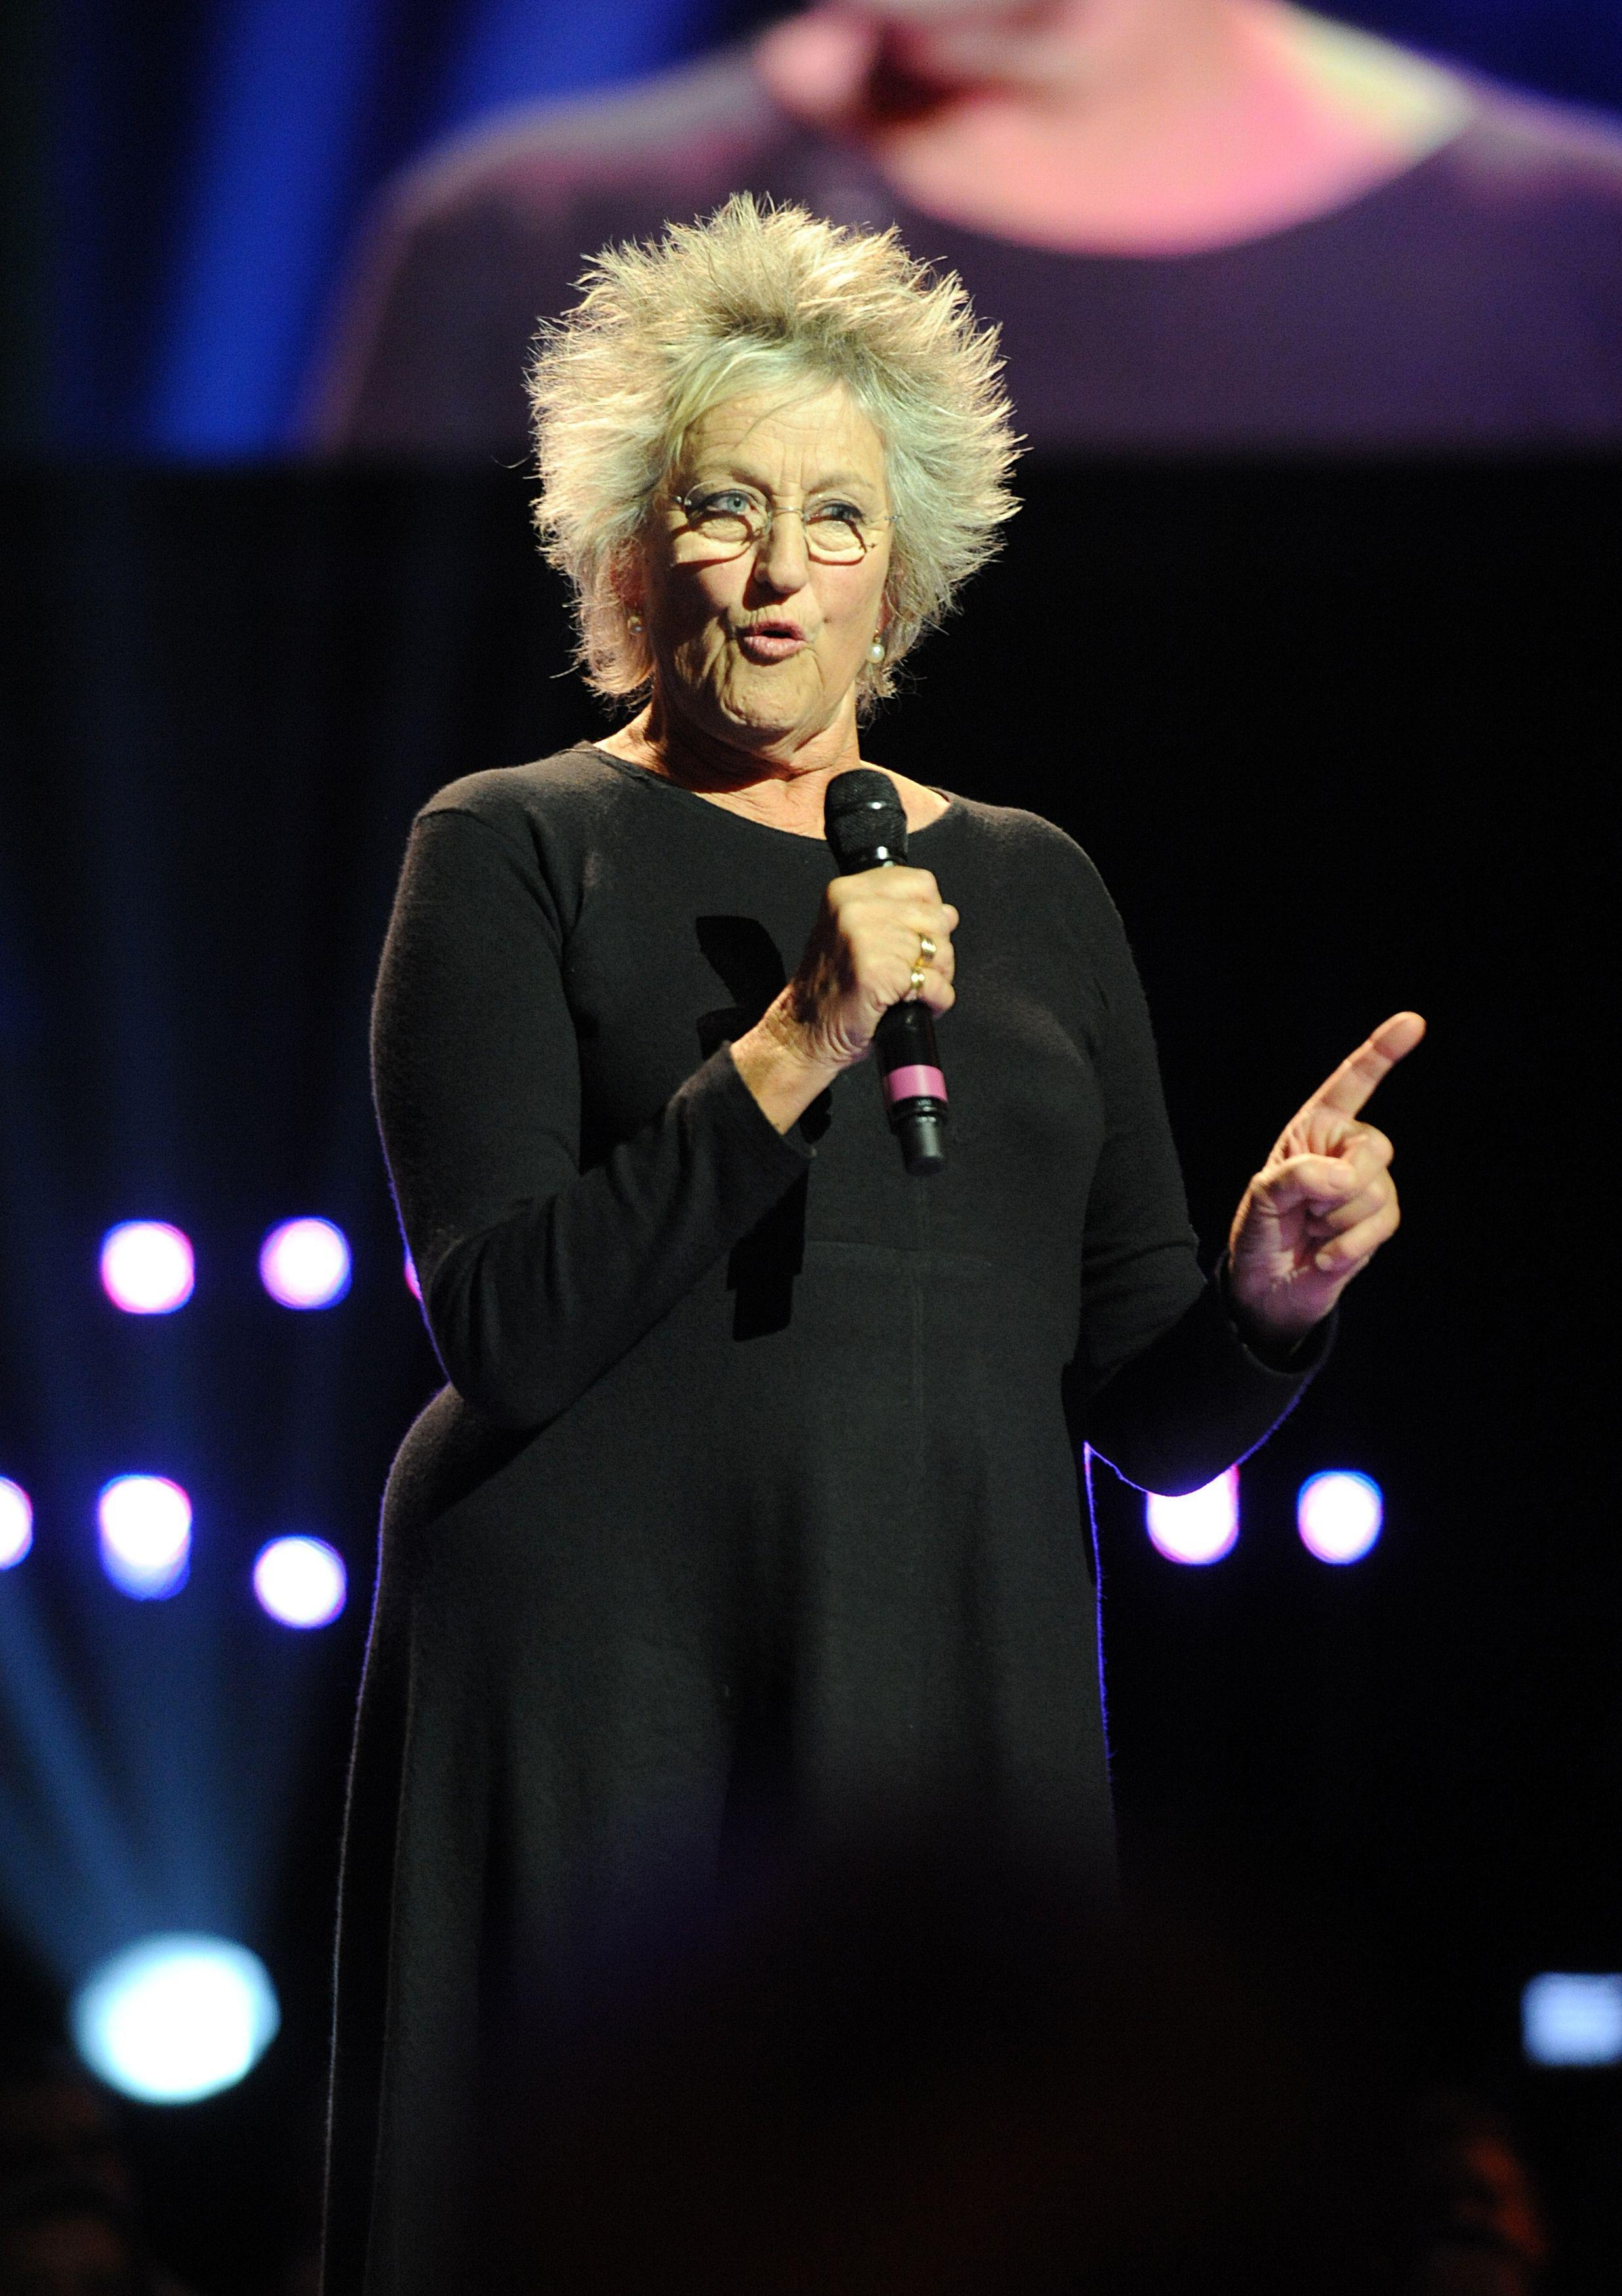 Feminist Germaine Greer attacks 'whingeing' Me Too movement